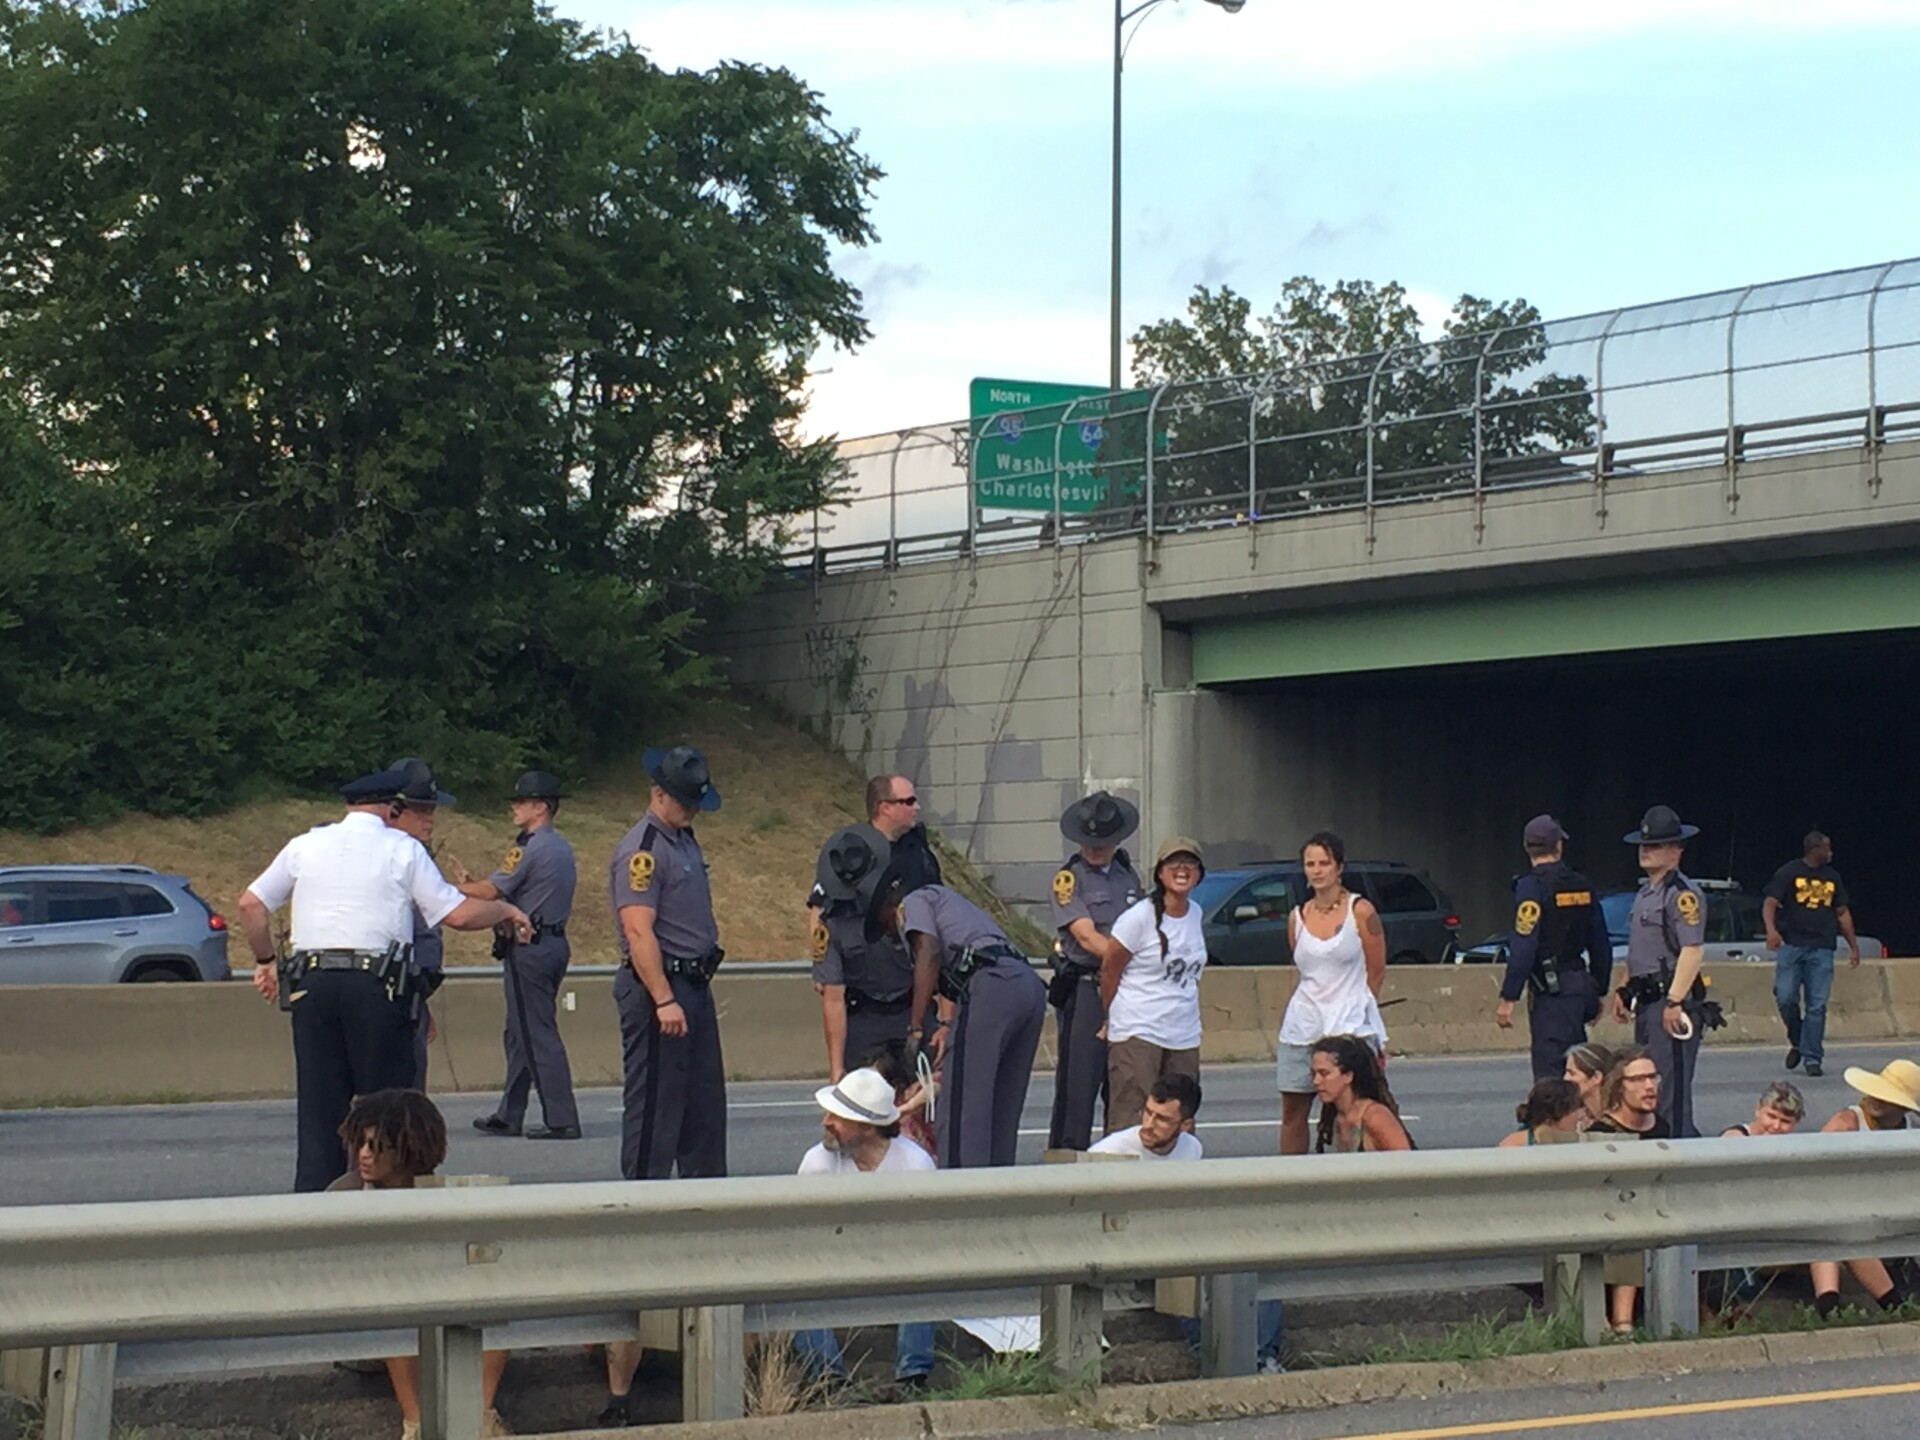 Photos: 13 BLM protesters sentenced to 5 days in jail for blocking I-95 in July